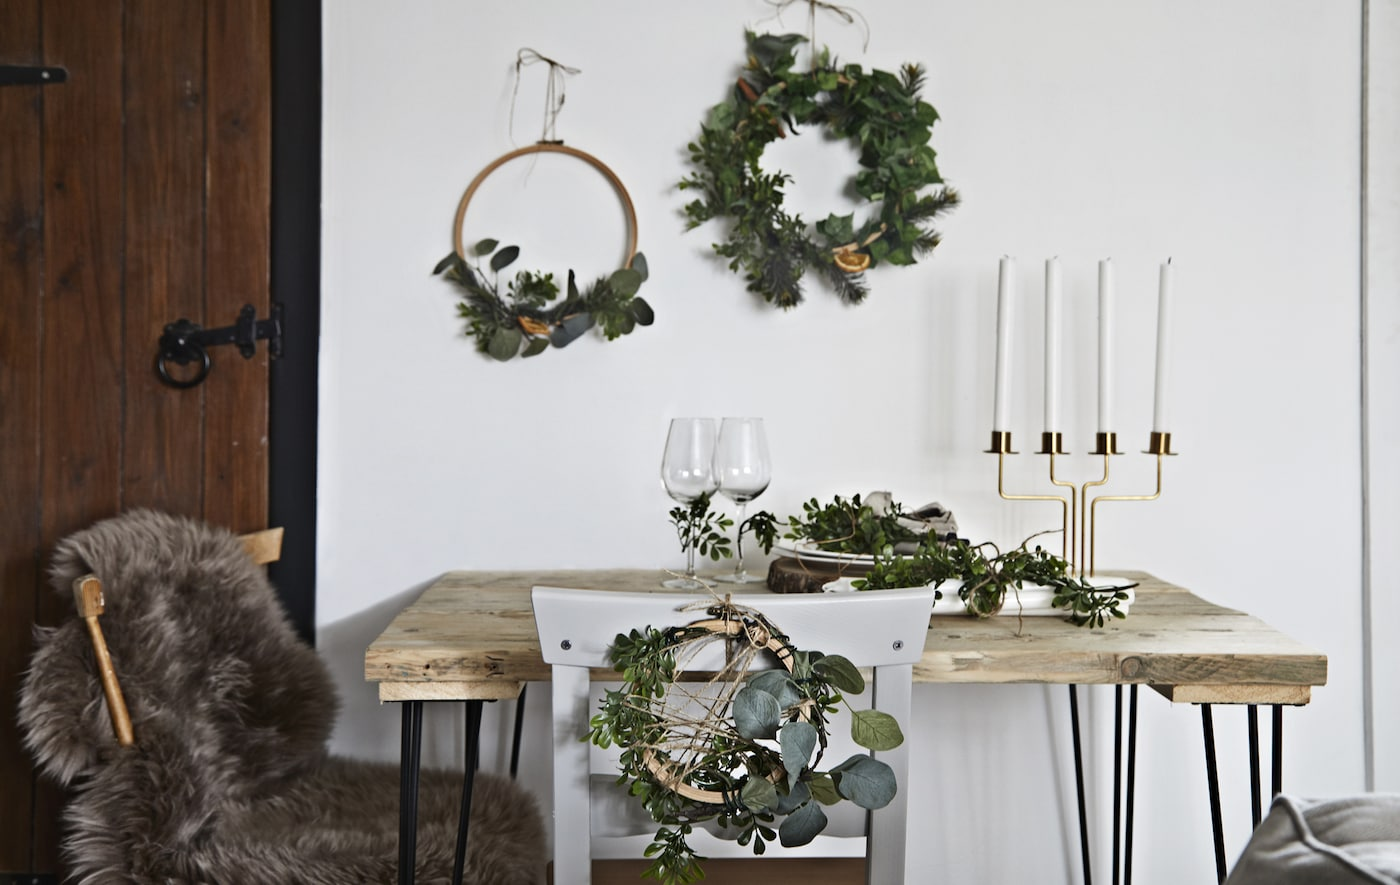 A table decorated with festive wreaths and accessories.